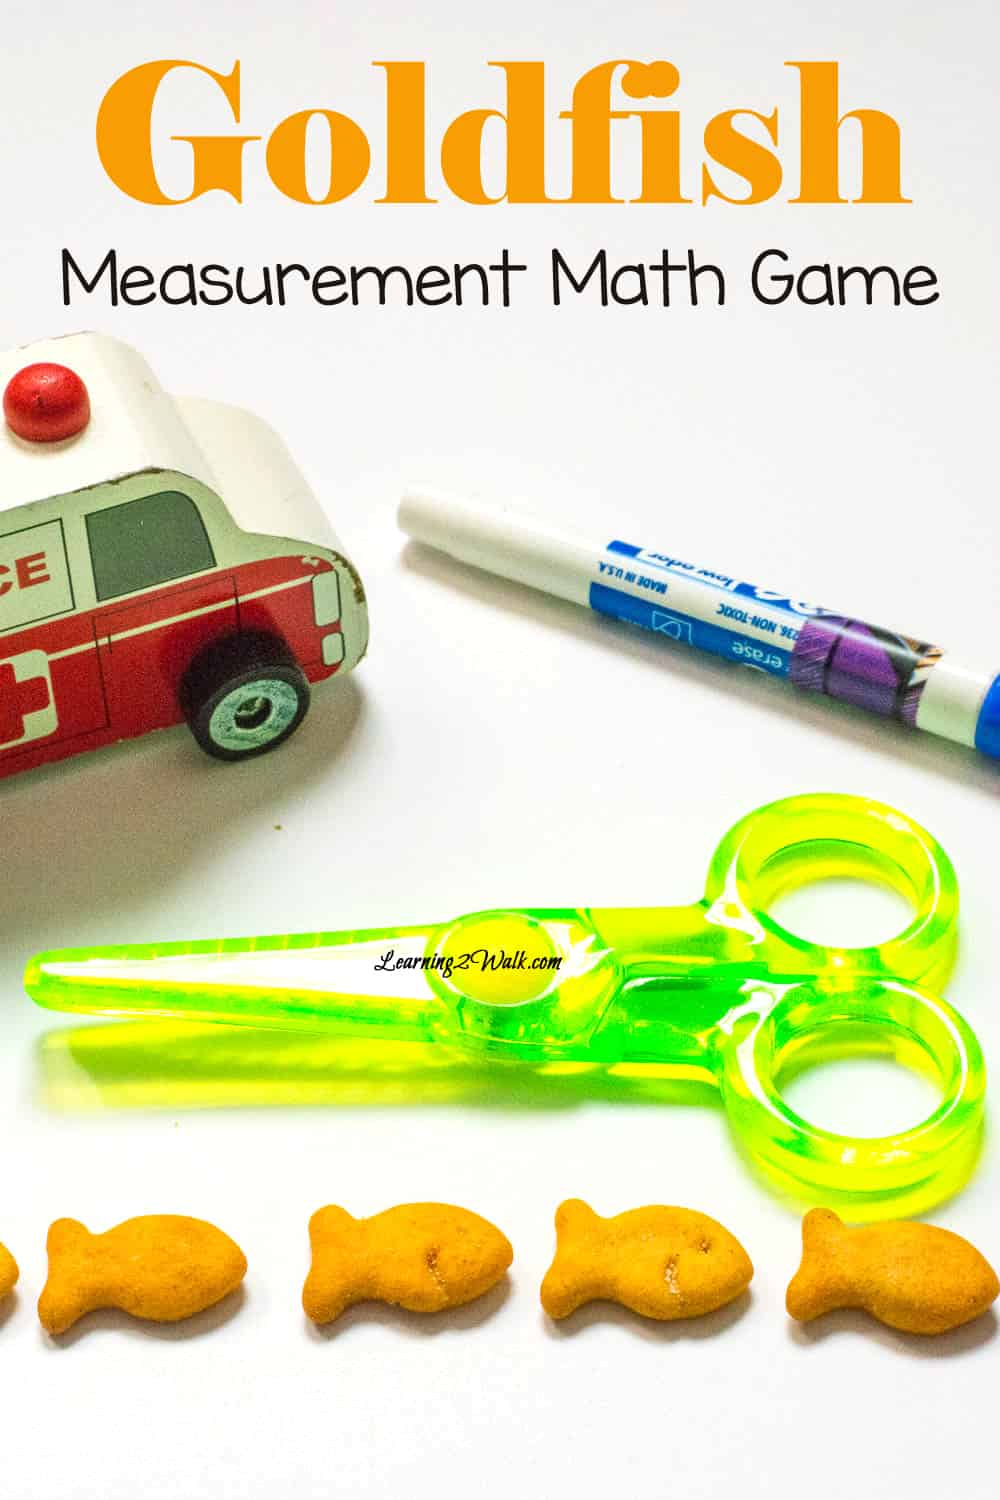 Goldfish Measurement Math Game